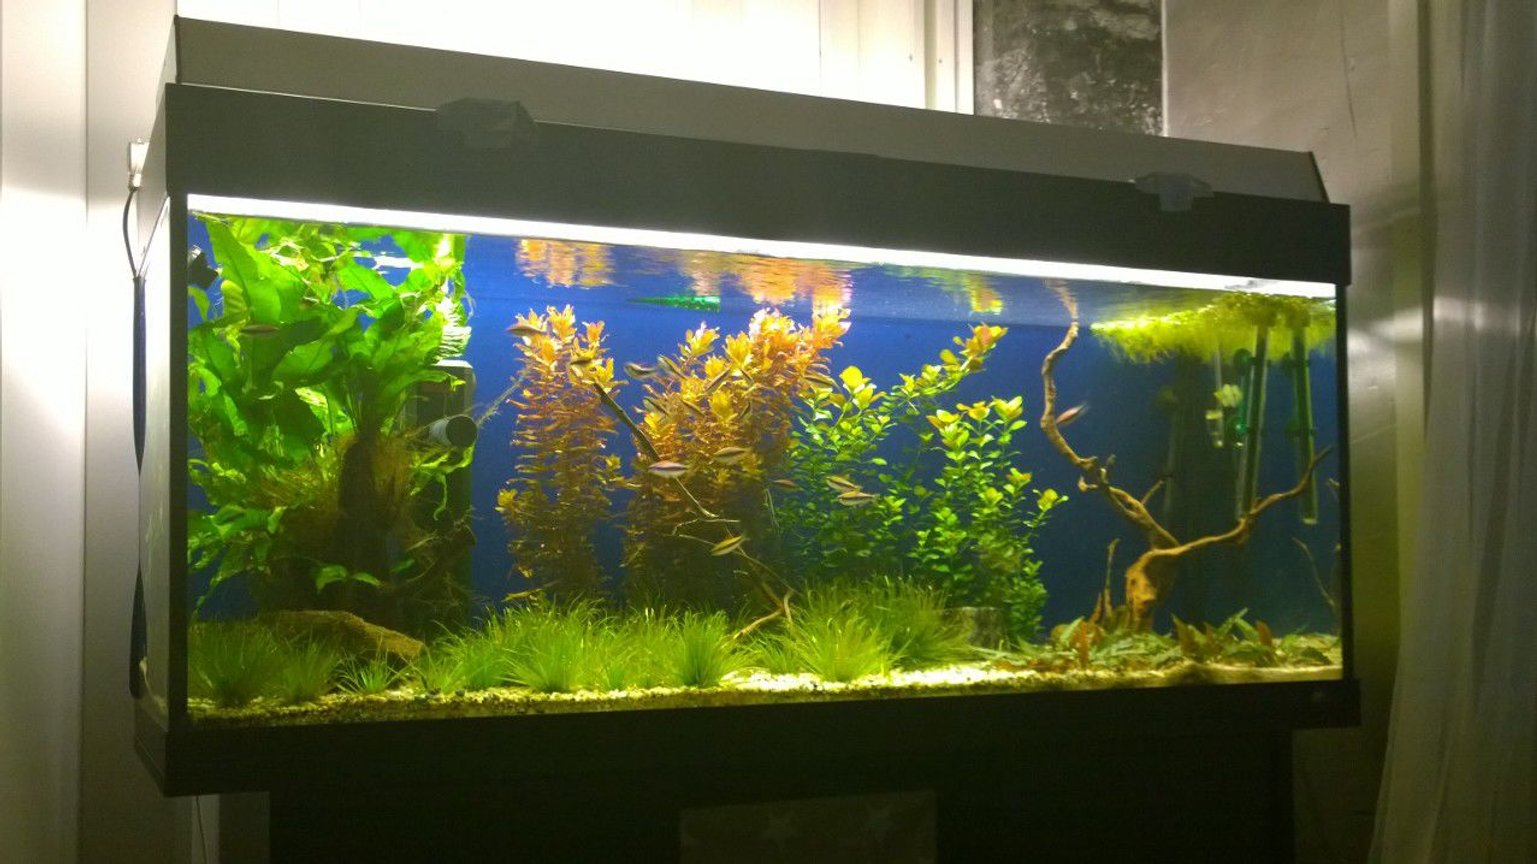 54 gallons planted tank (mostly live plants and fish) - Planted tank 54gallona/240ltr